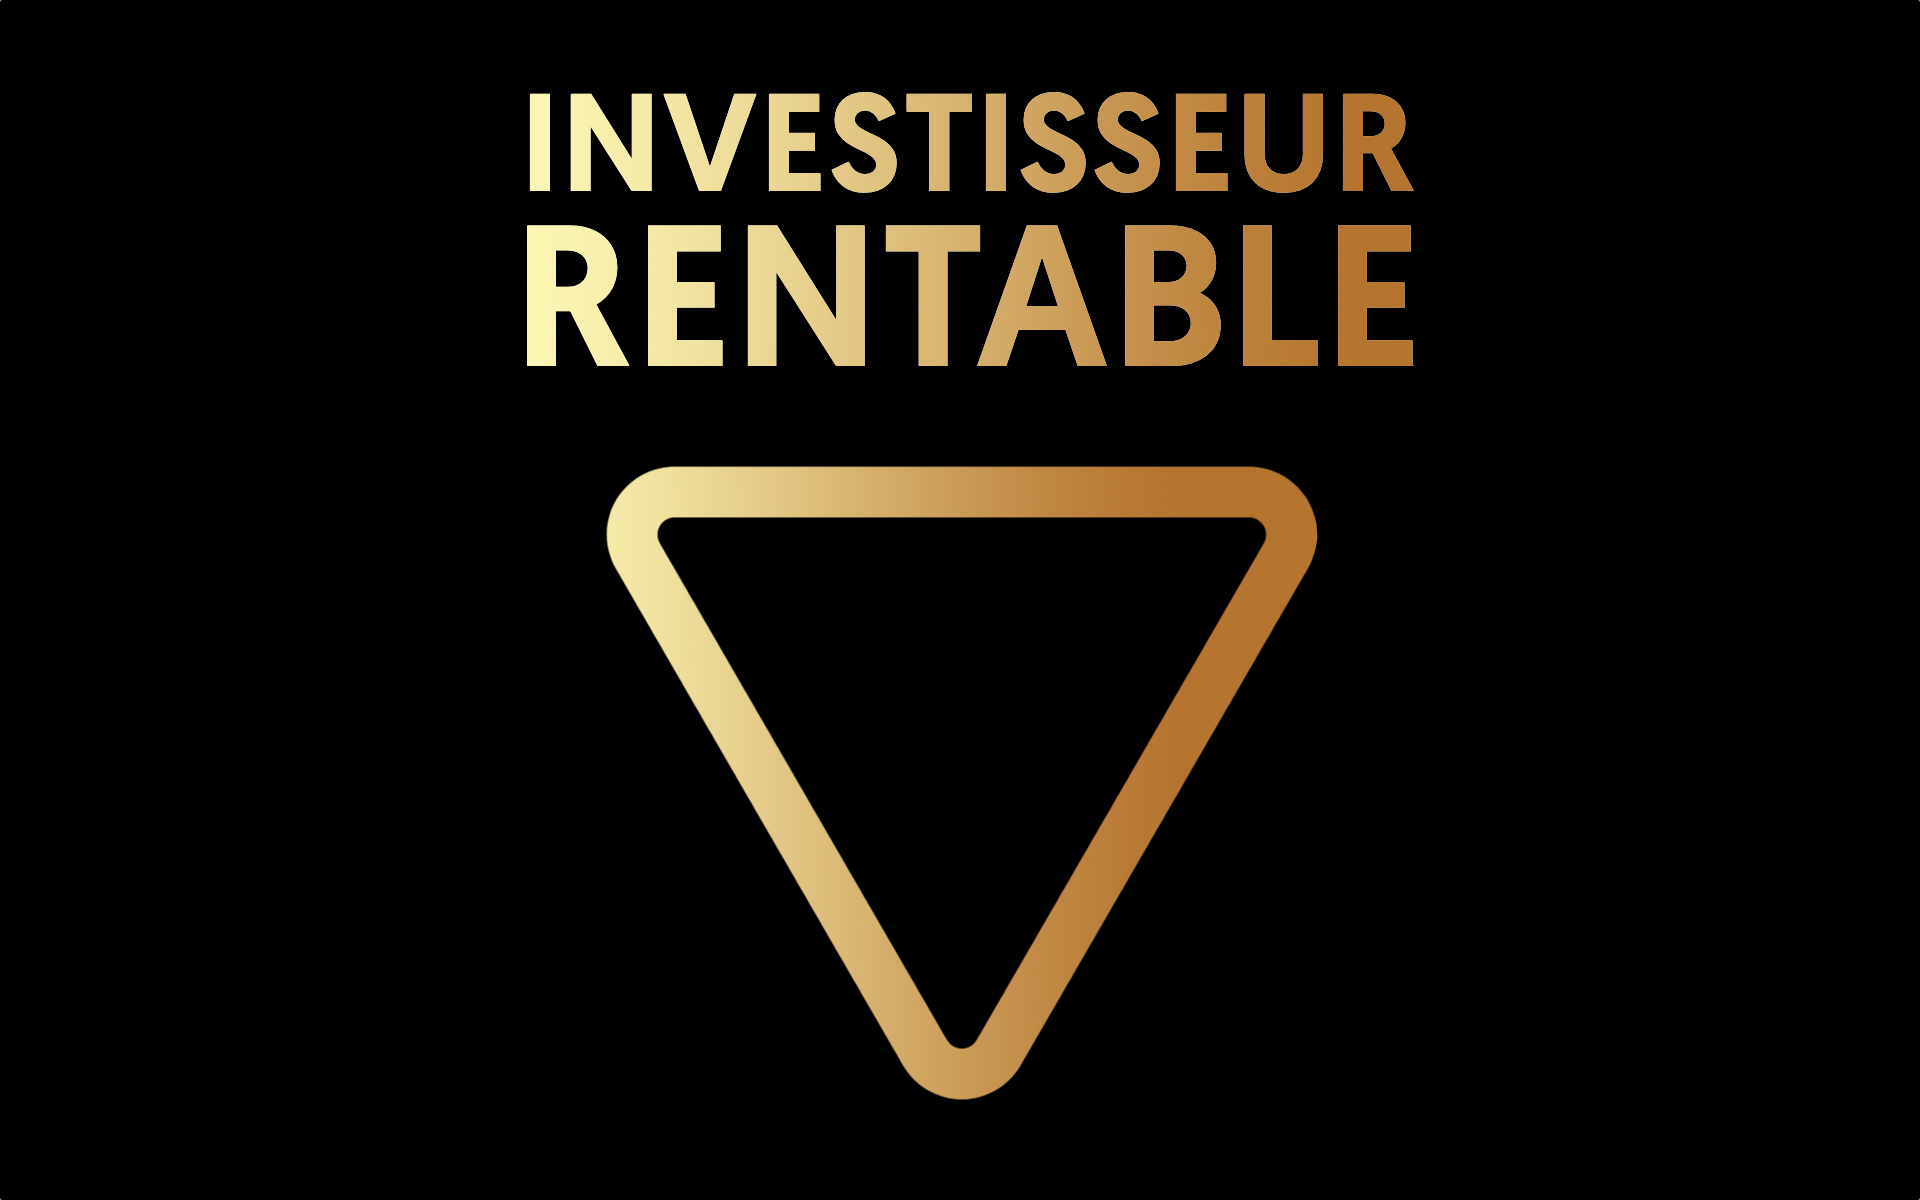 formation immobilier : investisseur rentable